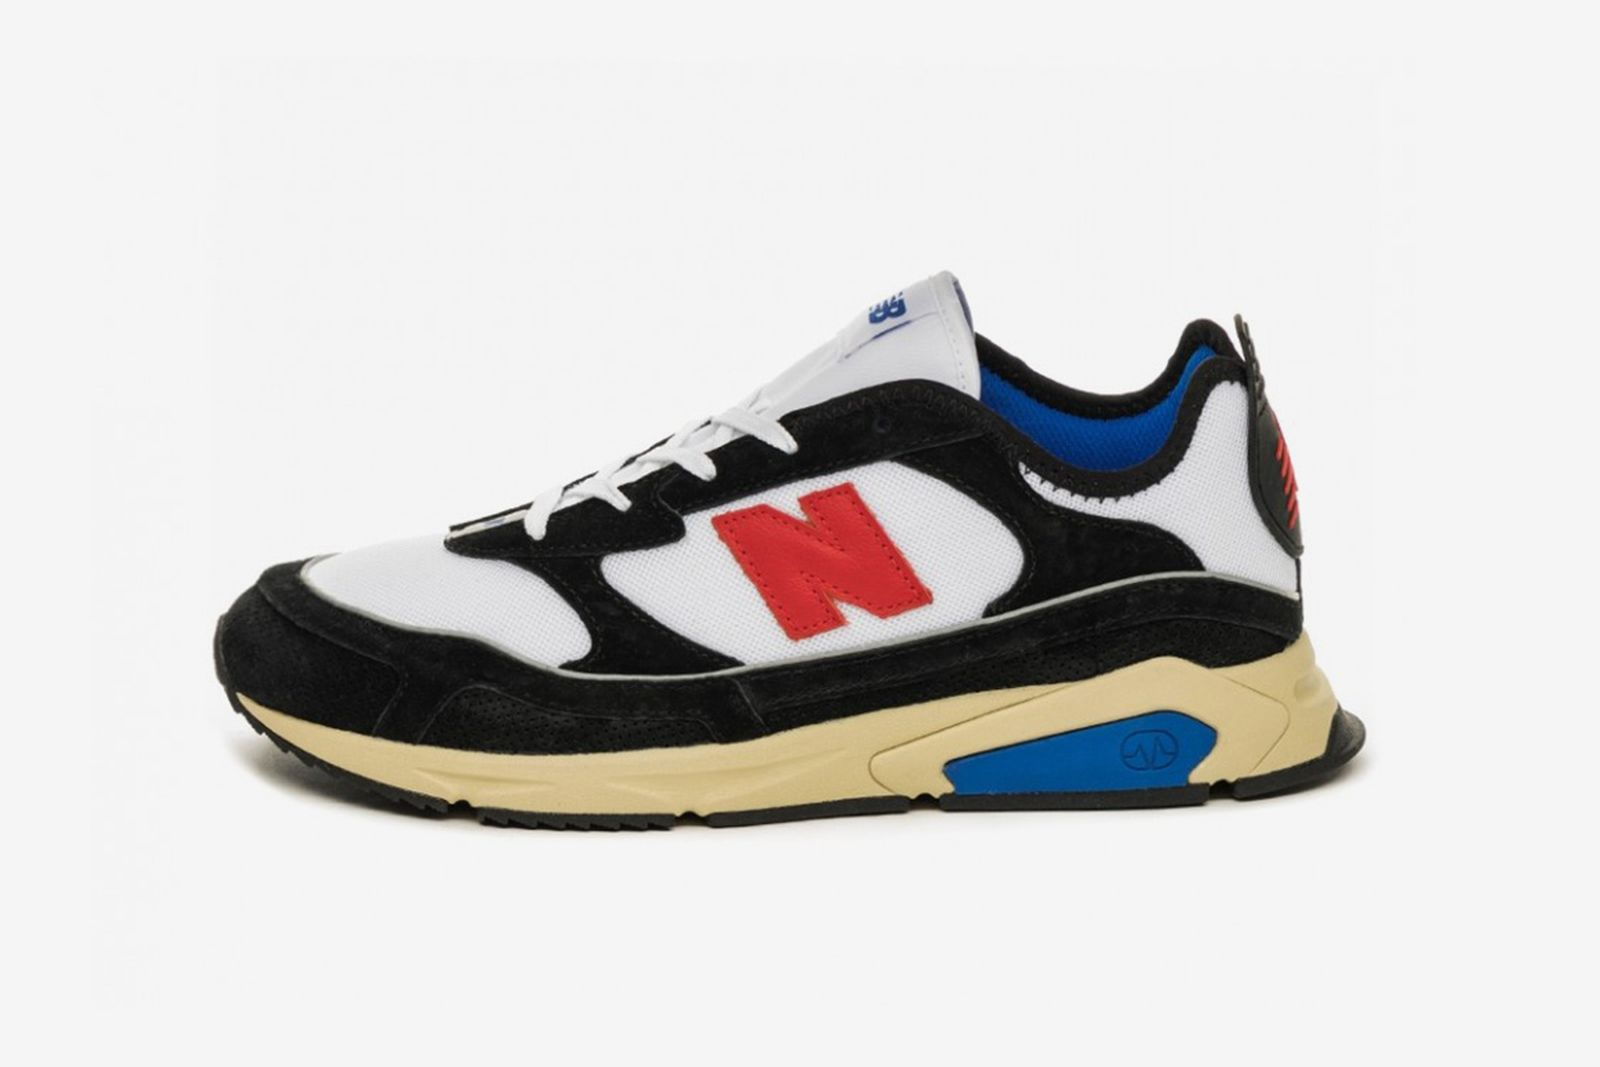 new balance x racer release date price New Balance X-Racer